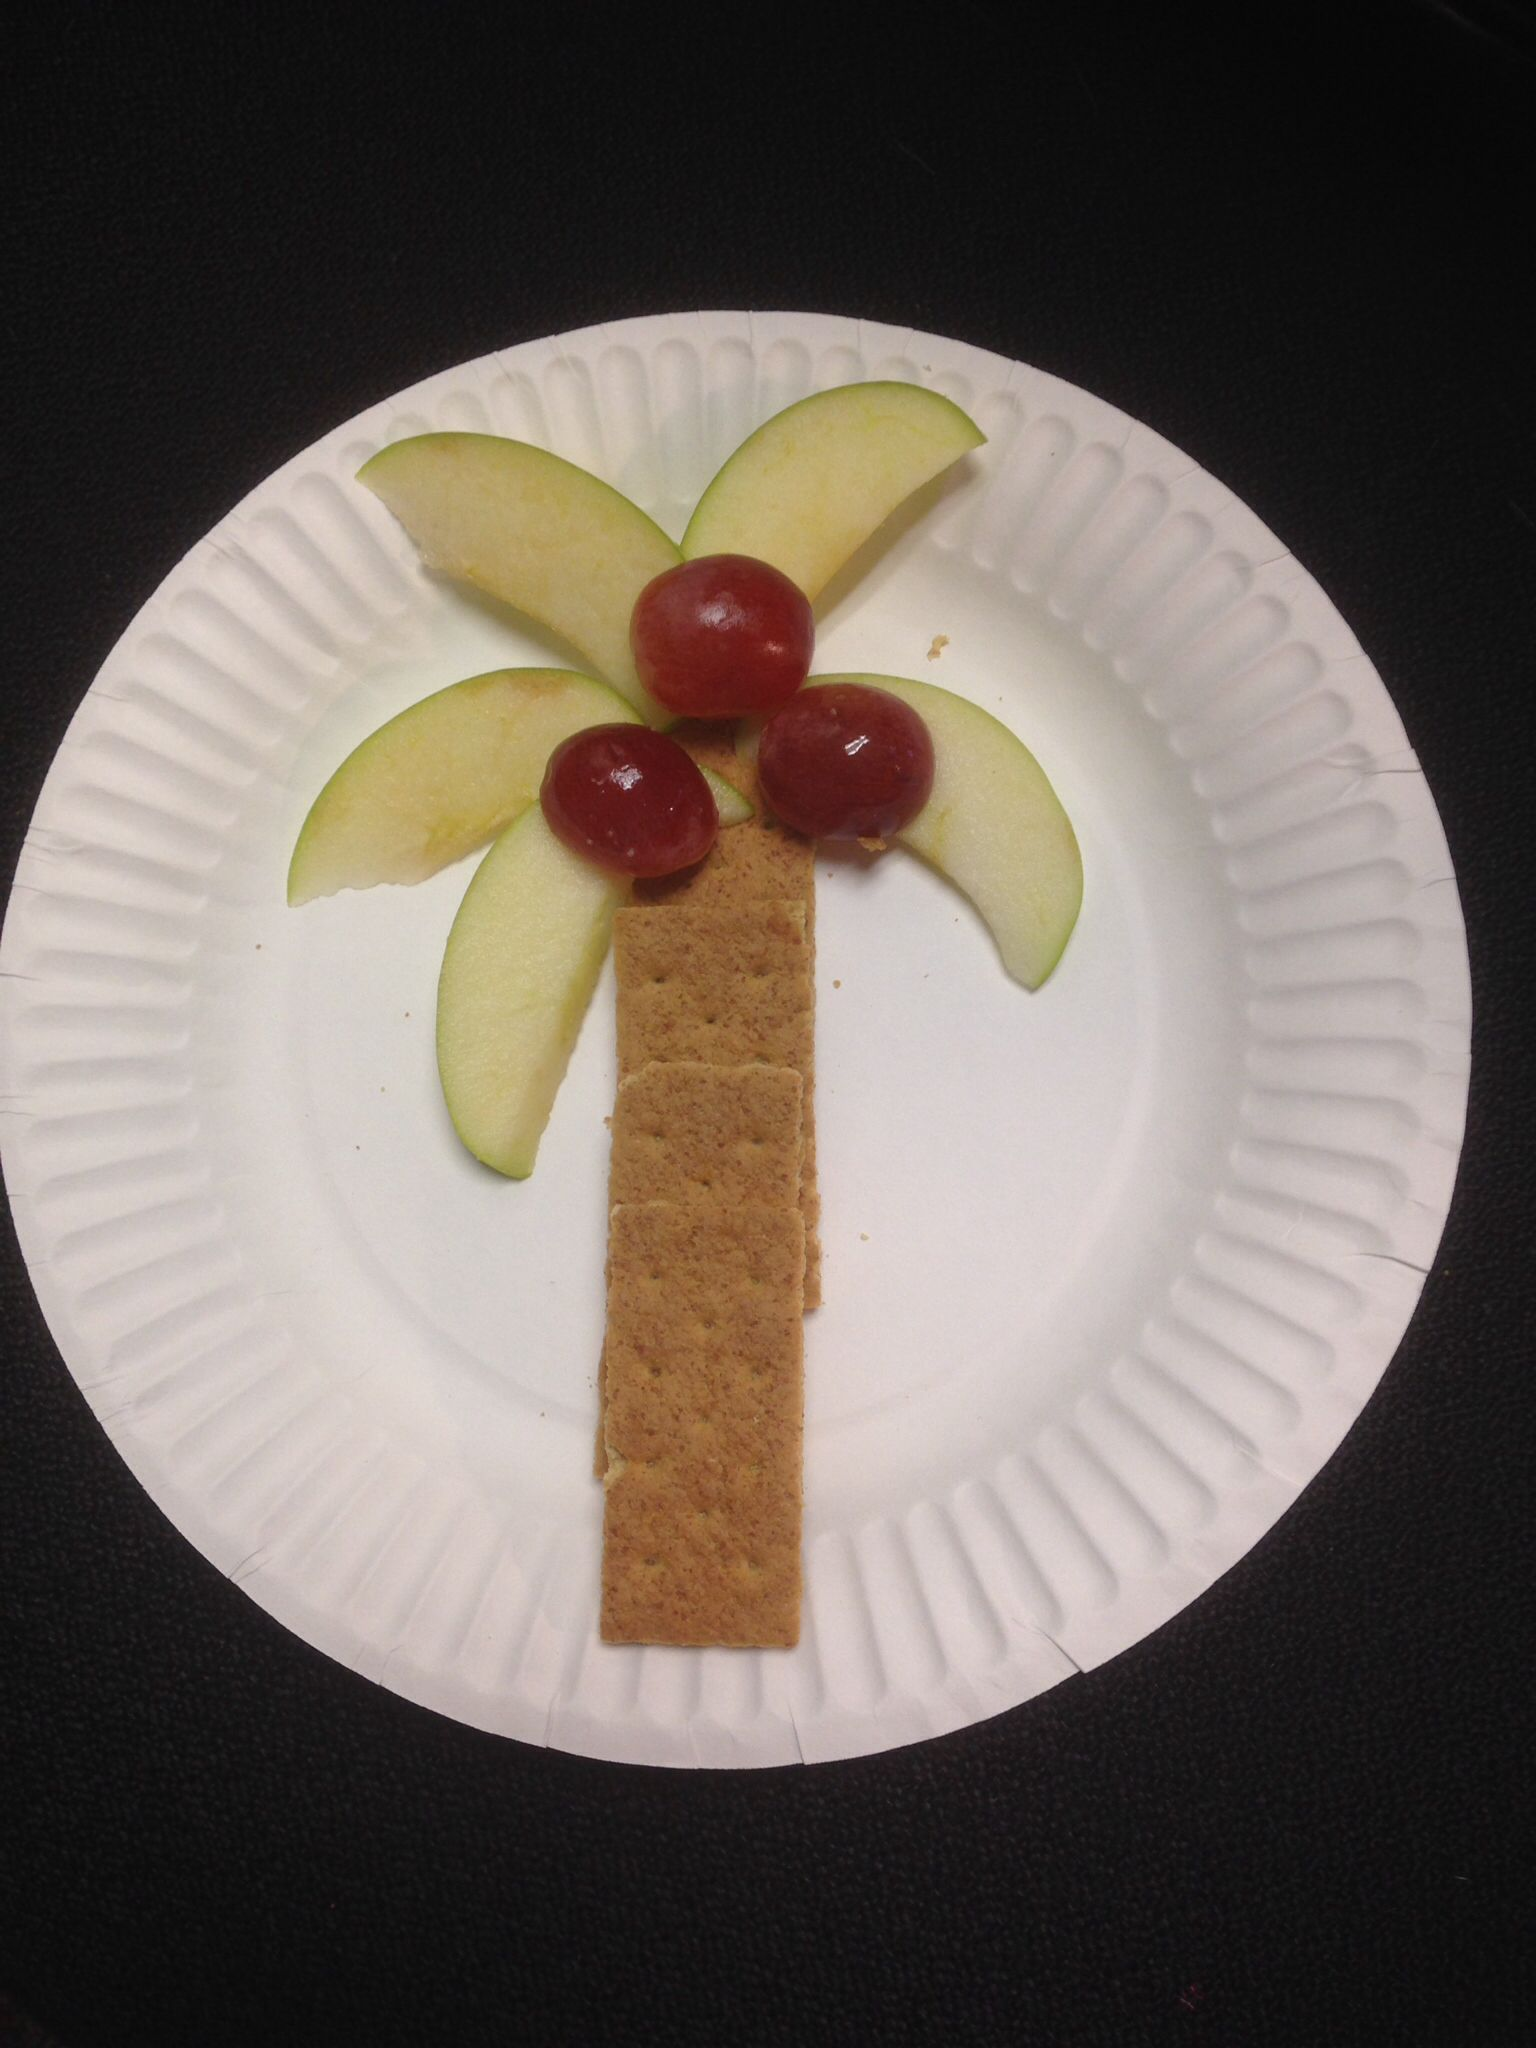 Chicka Chicka Boom Boom Snack We Made Today In The Preschool Read The Book For The Umpteenth